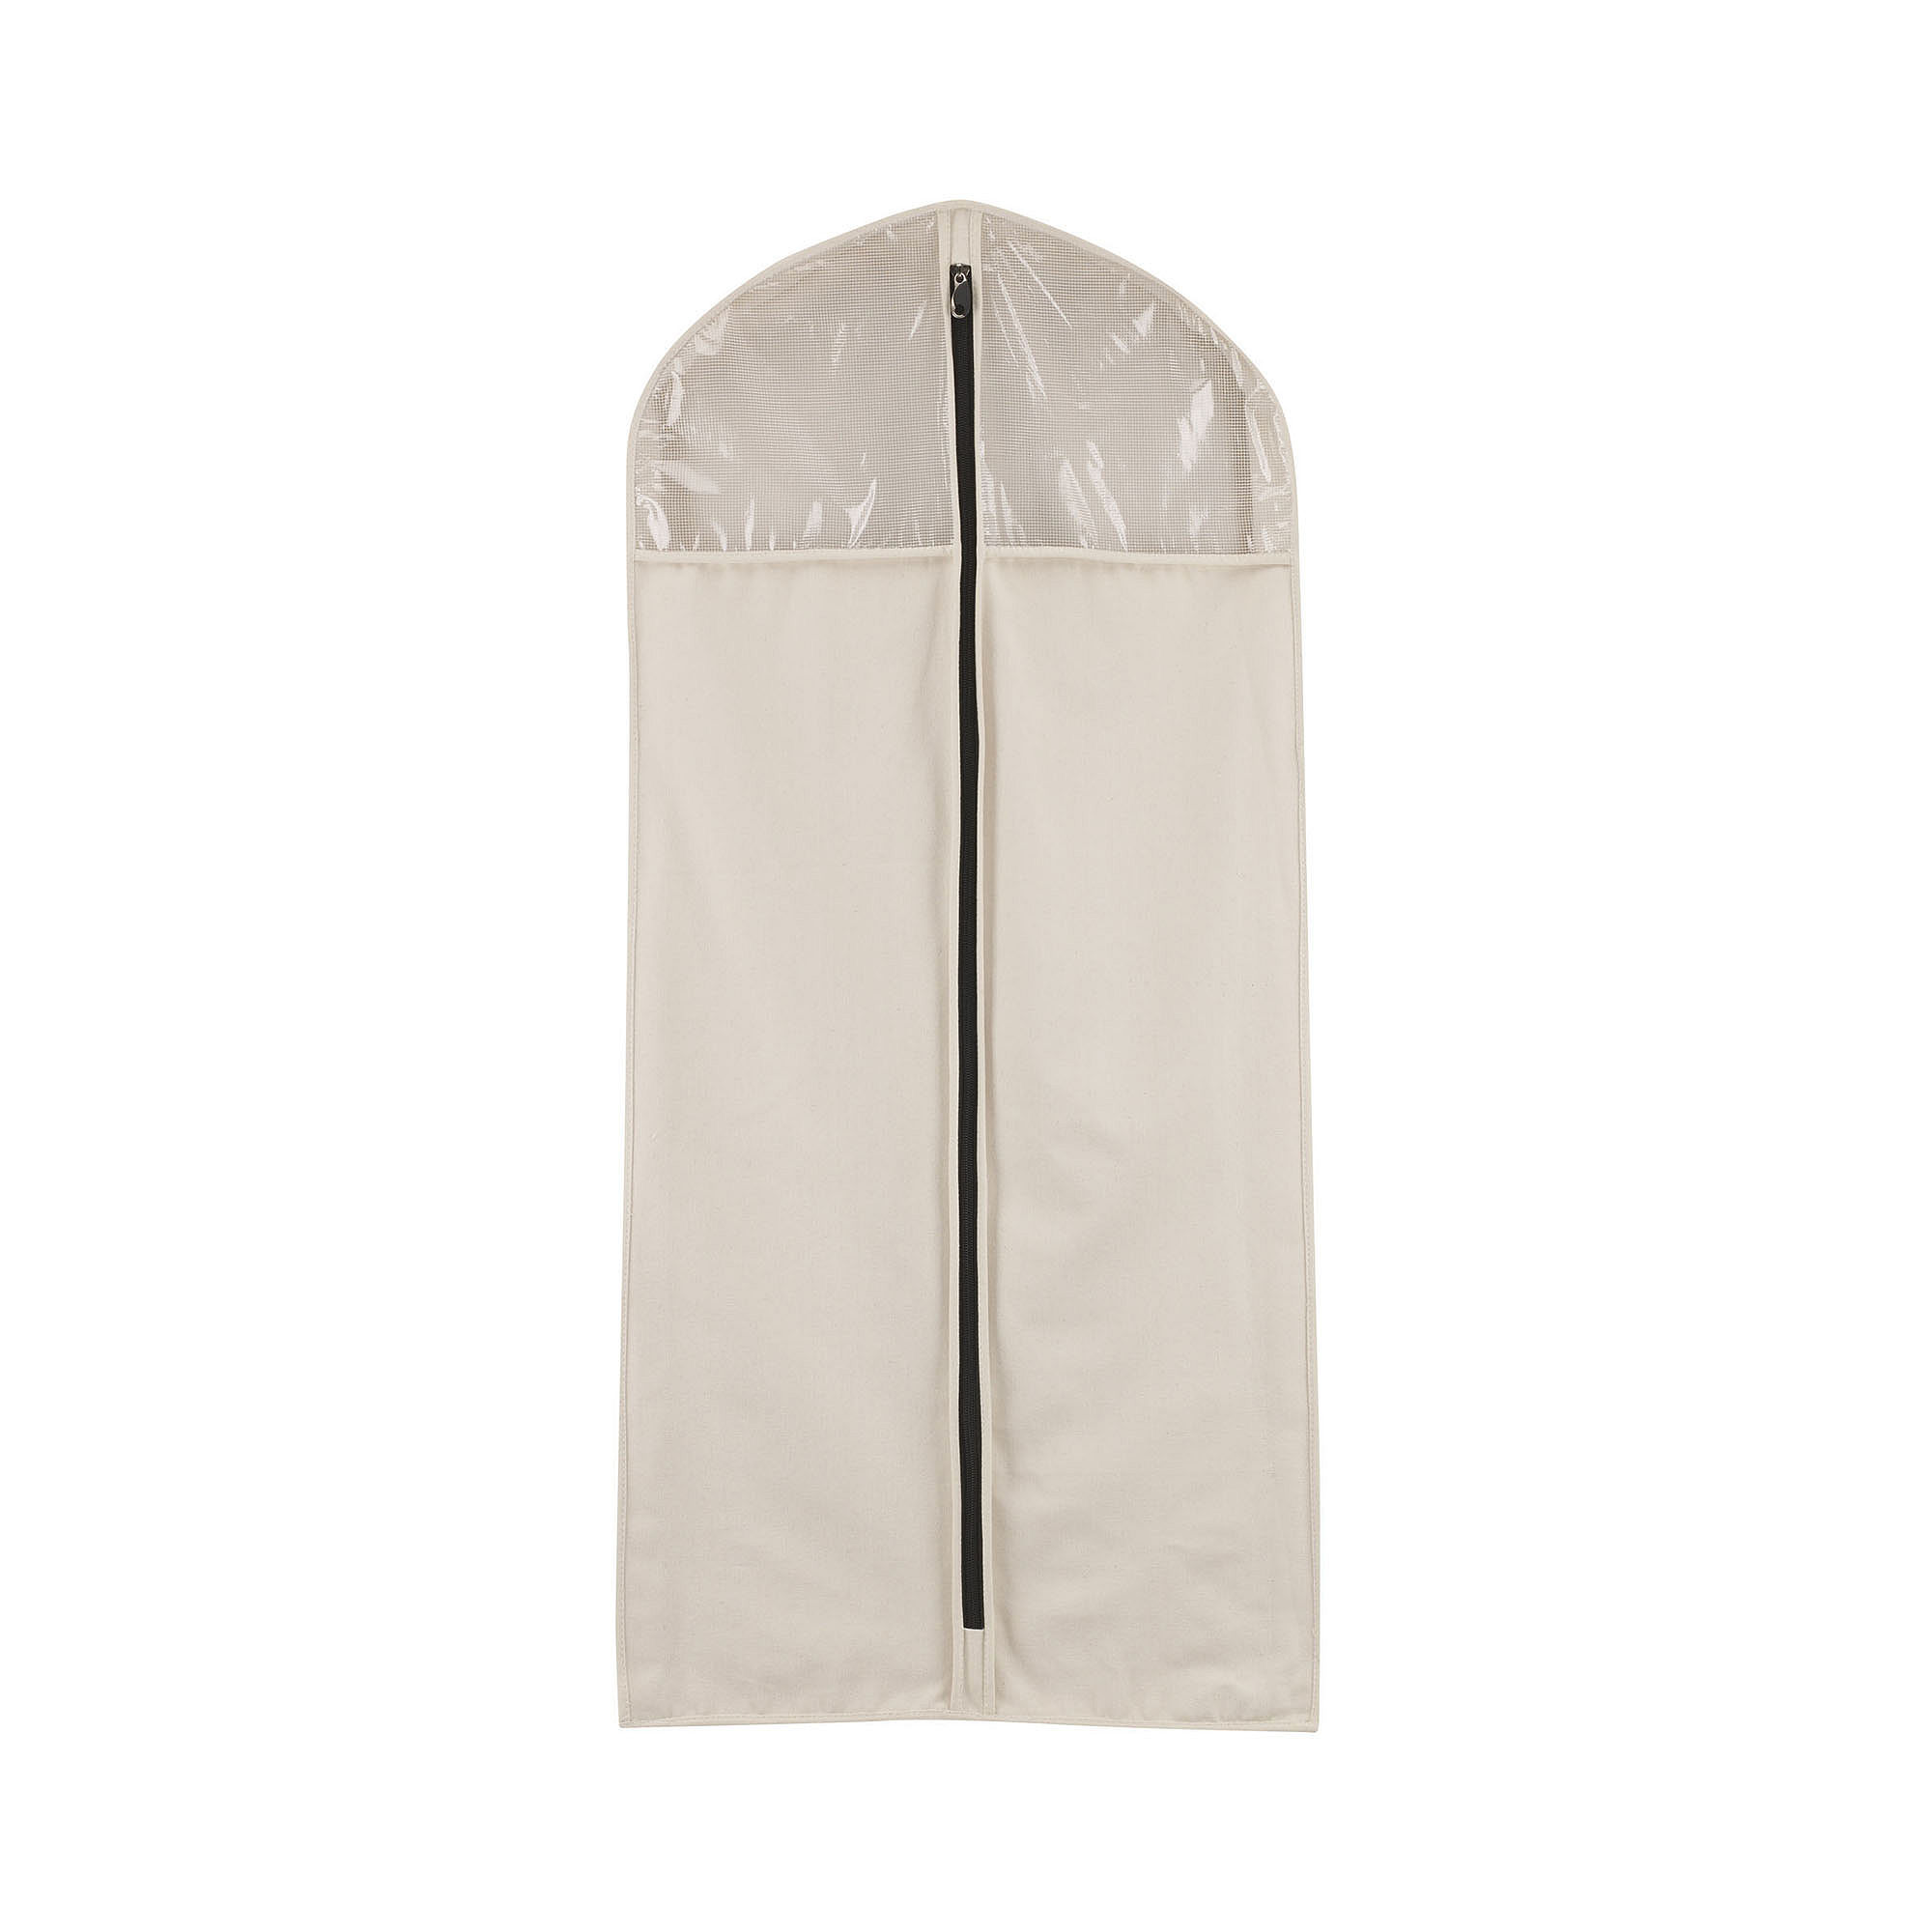 Household Essentials Zippered Hanging Canvas Suit/Dress Bag